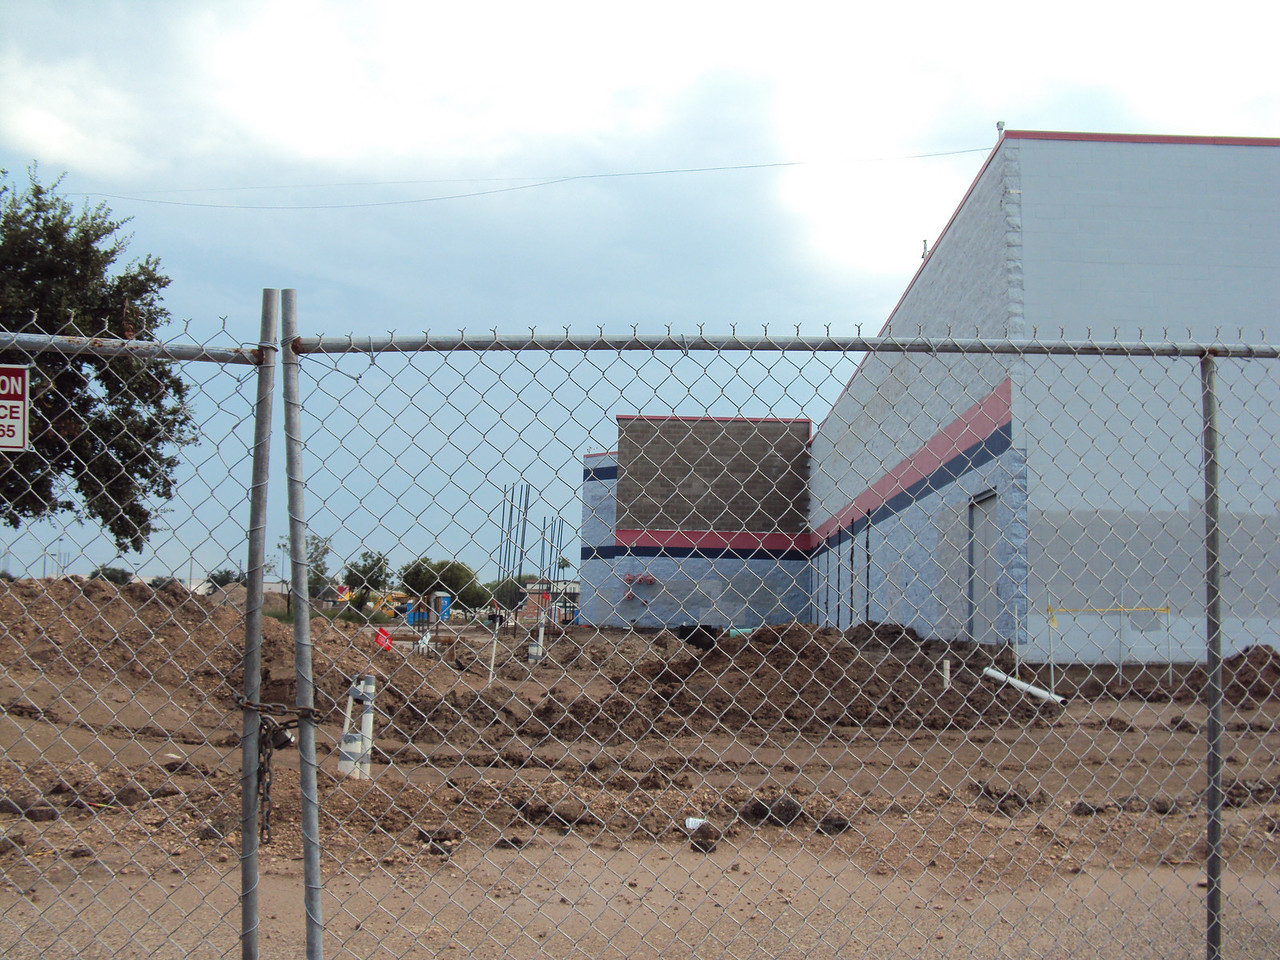 9/26/2010 - Front-right side of building.